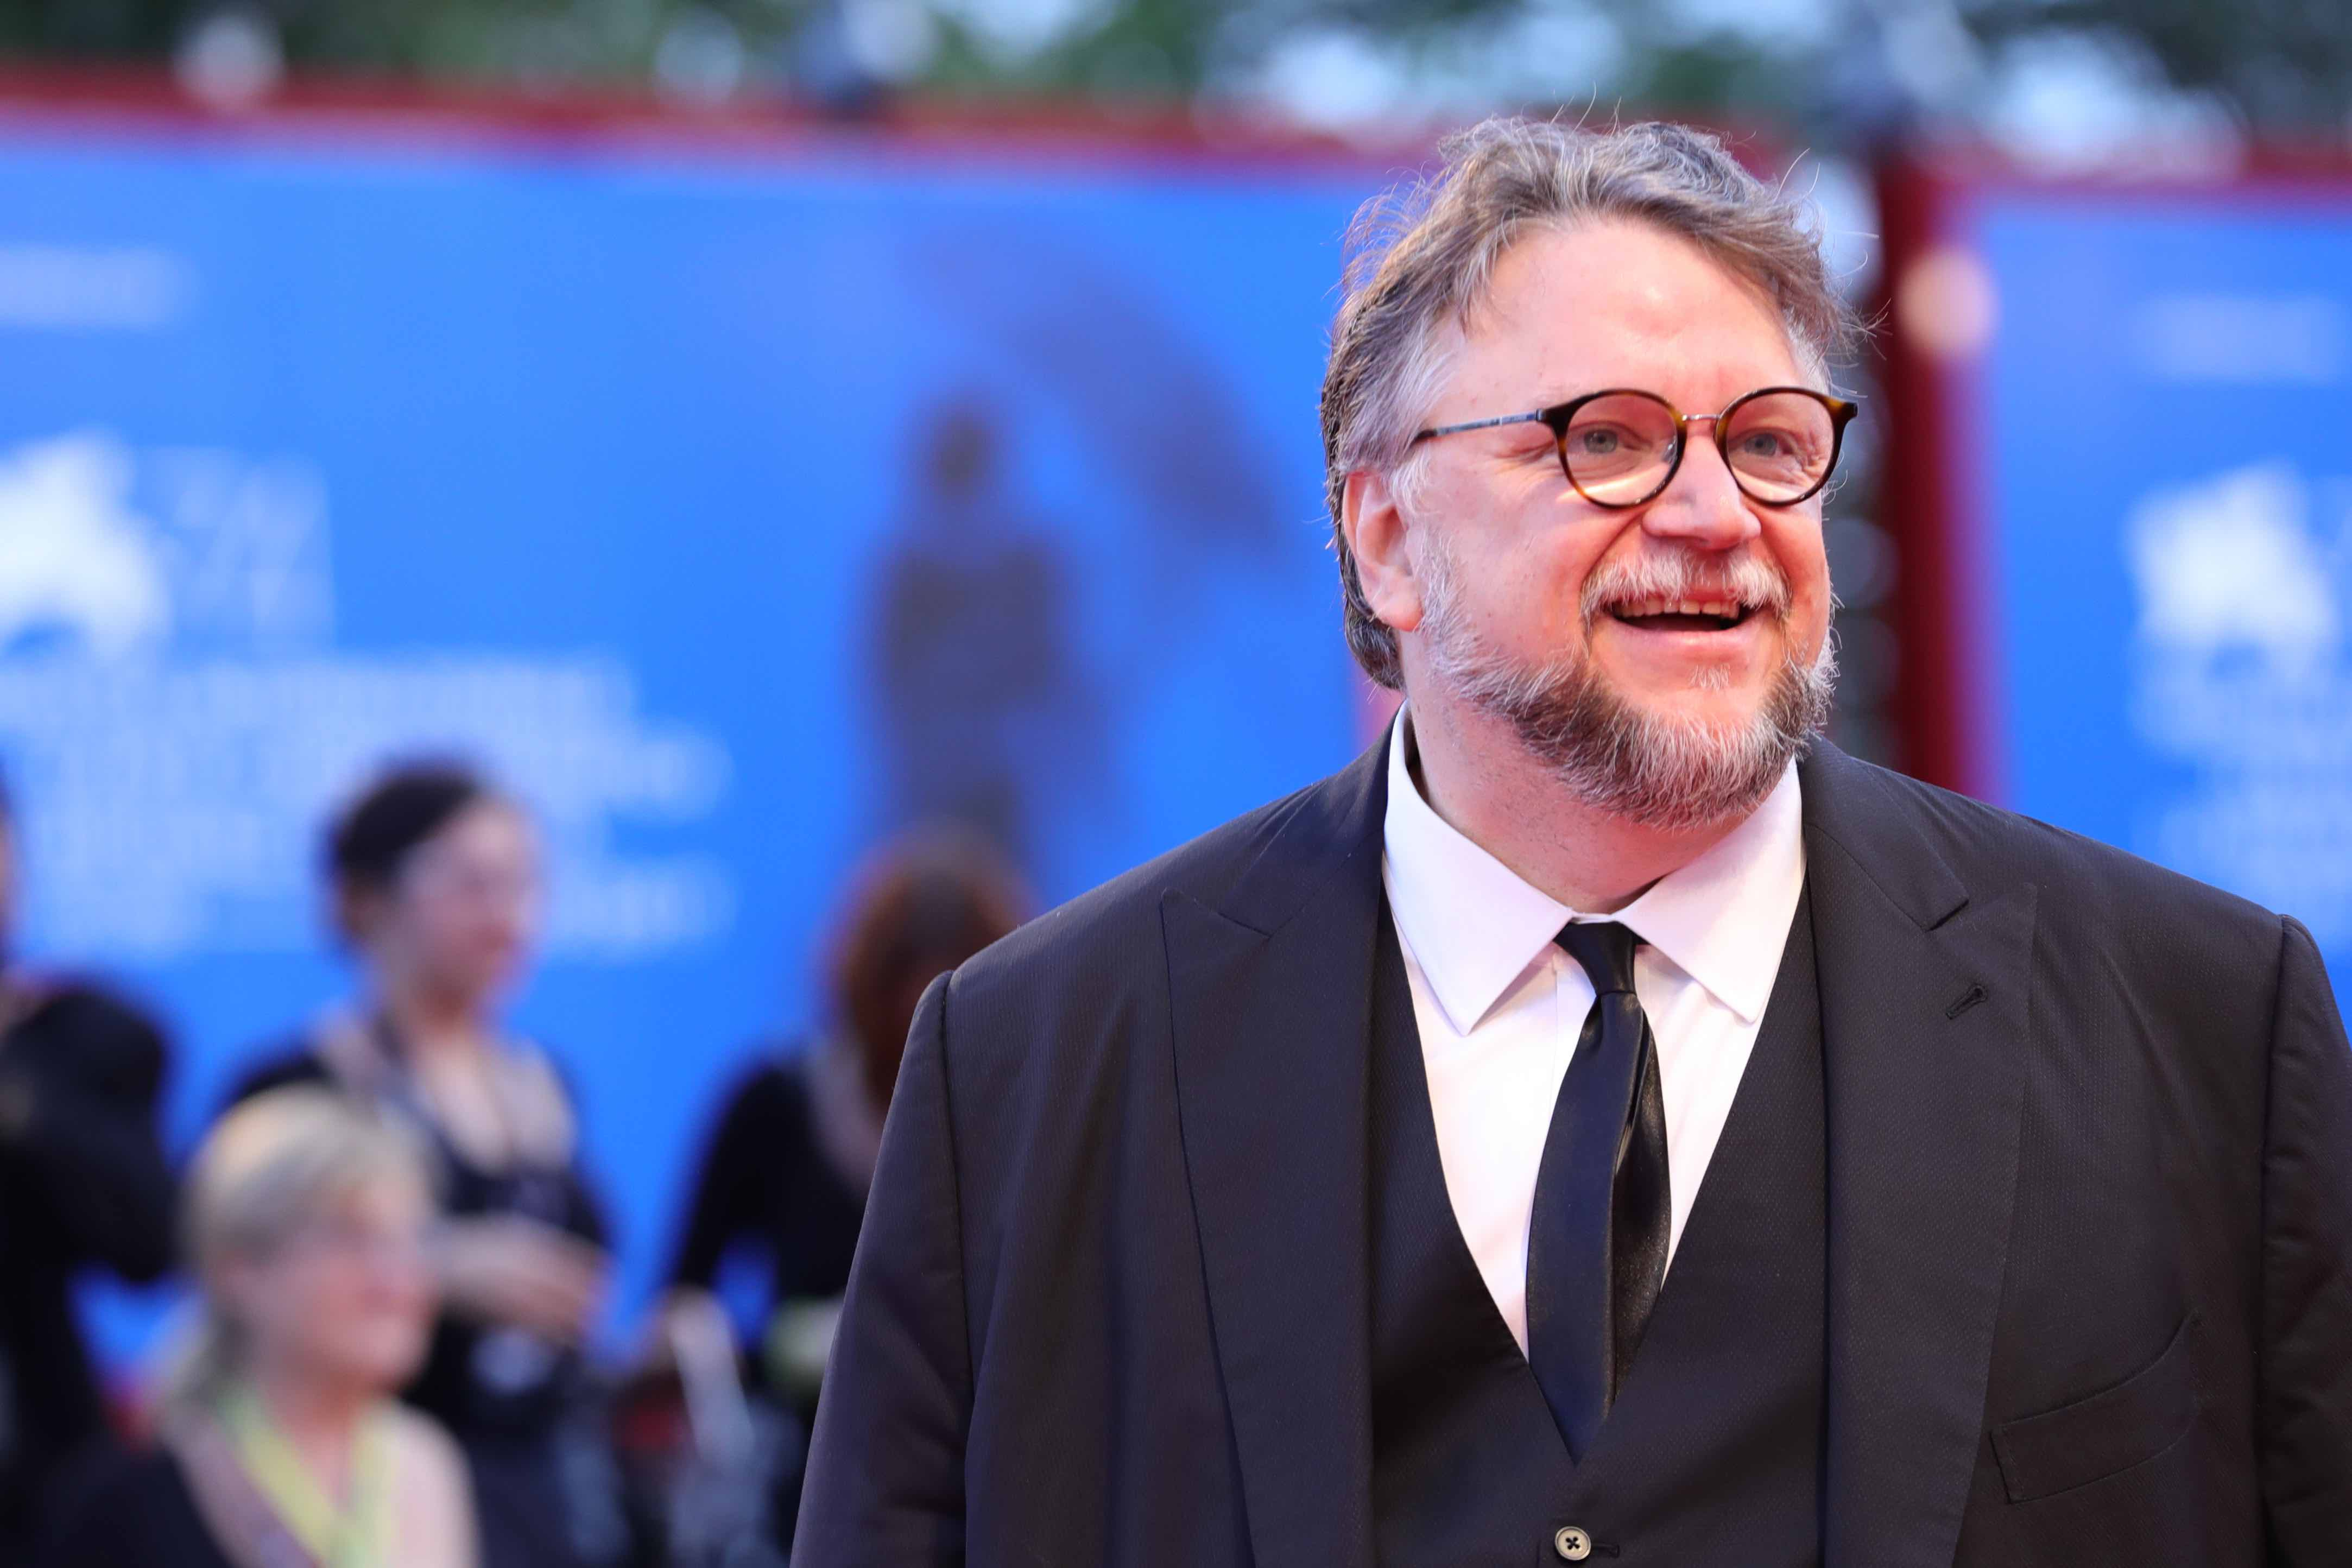 A Woman Was Brought to Tears After Guillermo del Toro Unexpectedly Helped Pay for Her Biopsy